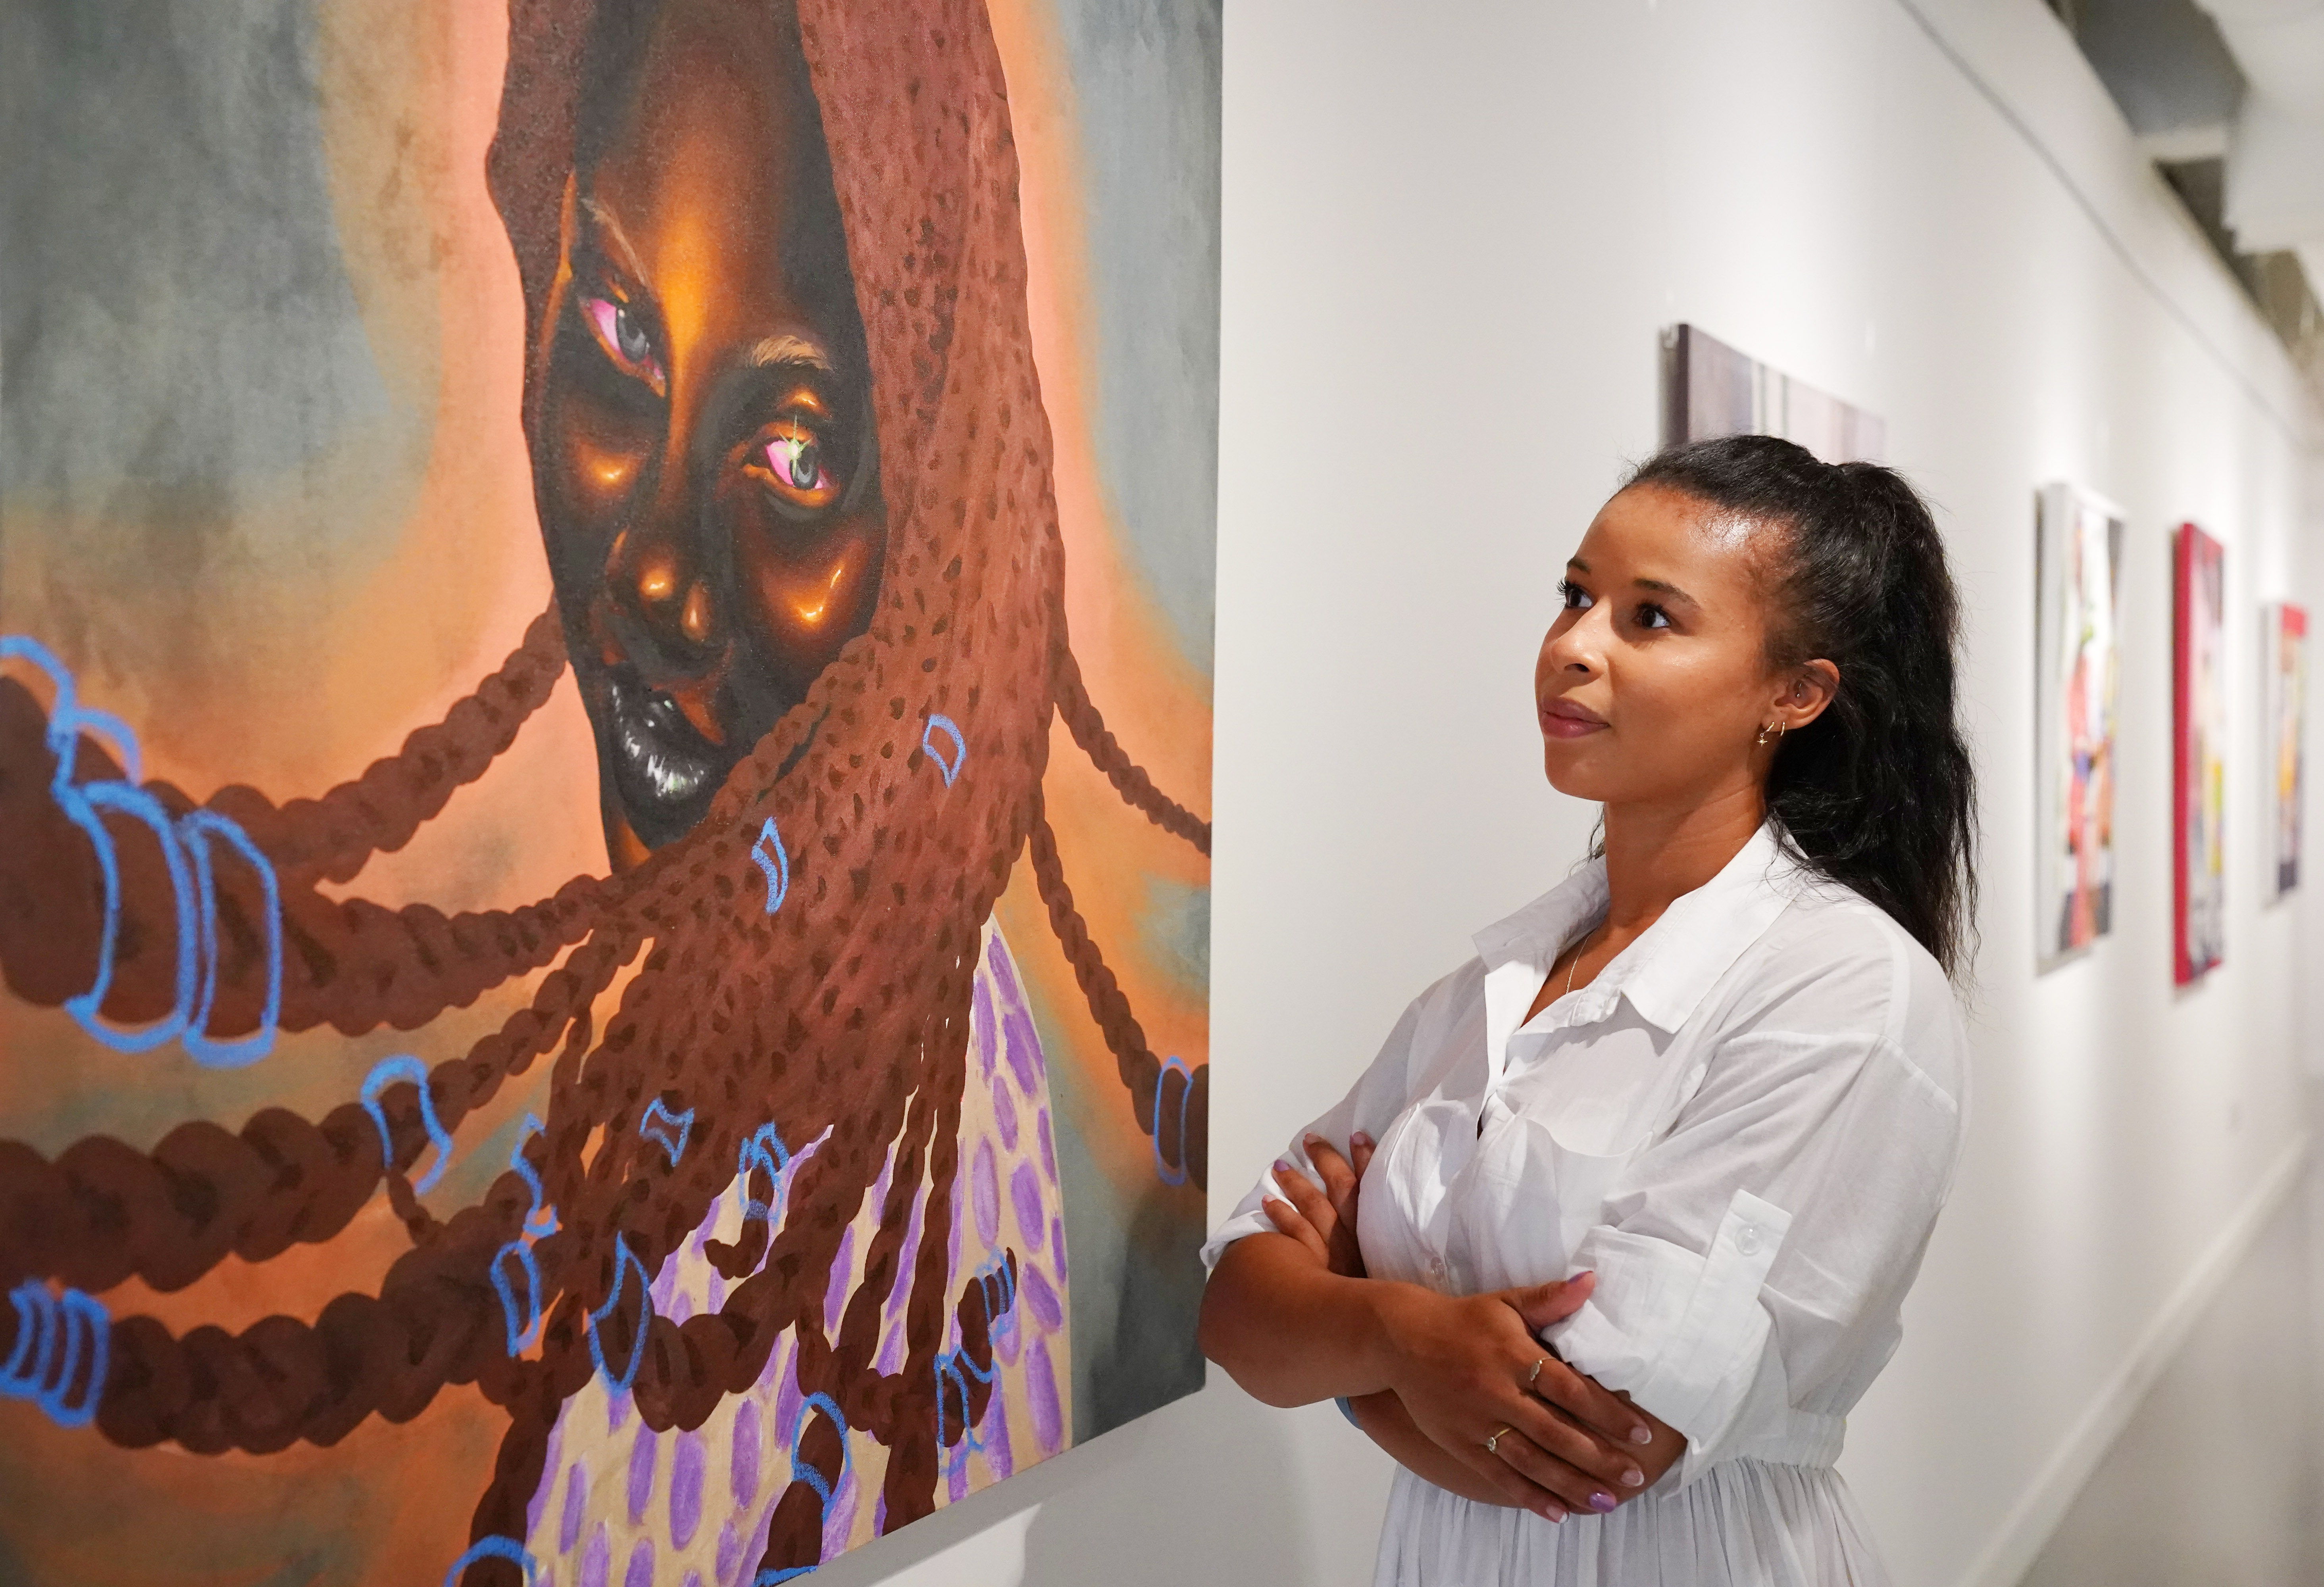 <p>A HOFA Gallery employee looks at 'Serena' by Chinaza Agbor during the preview of the Mother of Mankind exhibition, showcasing 18 black female artists, curated by Adora Mba, at the HOFA Gallery (House Of Fine Art), in Mayfair, London. Picture date: Wednesday July 21, 2021.</p>